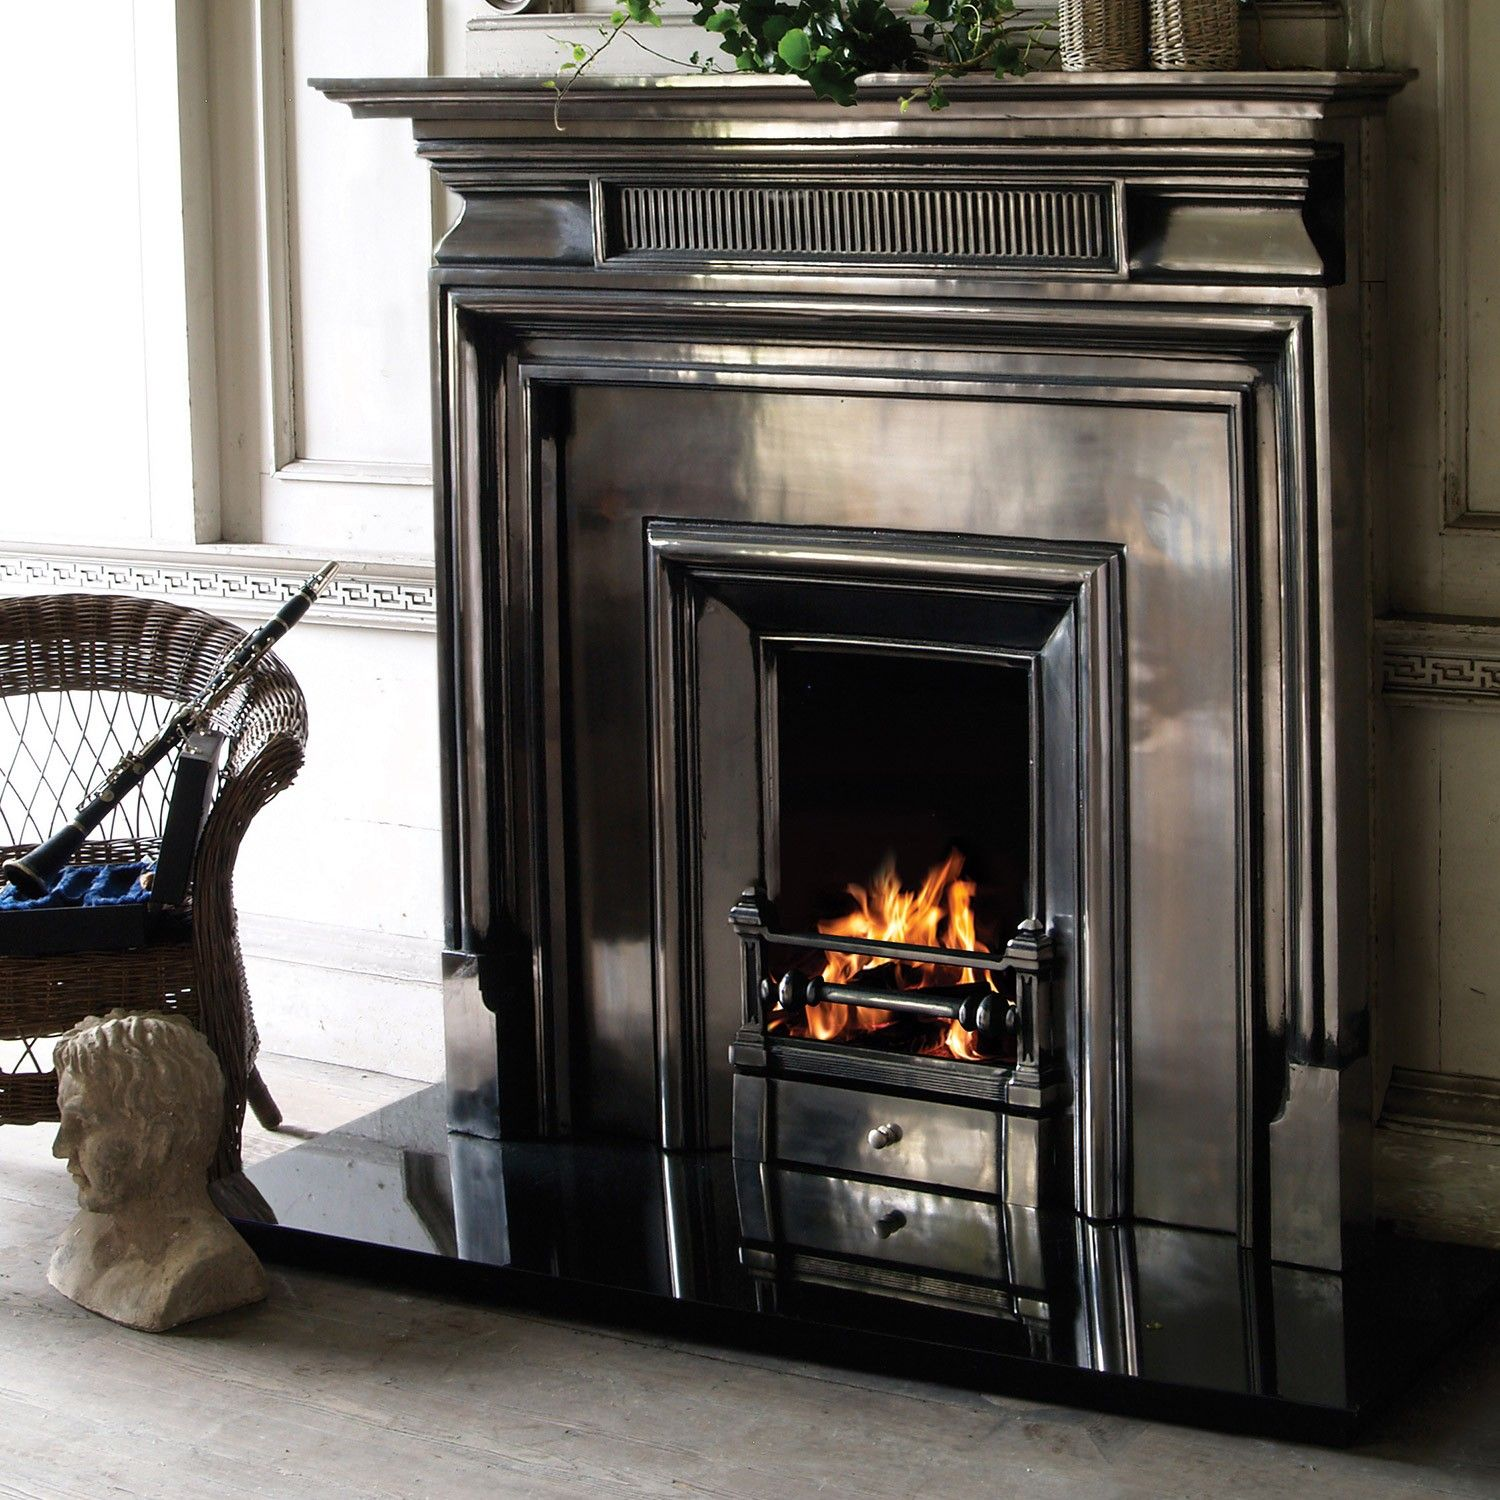 Nice The Belgrave Royal Is A Large Cast Iron Fireplace With Strong Geometric  Designs Typical Of The Edwardian Era. The Fireplace Consists Of The  Belgrave Cast ... Good Looking